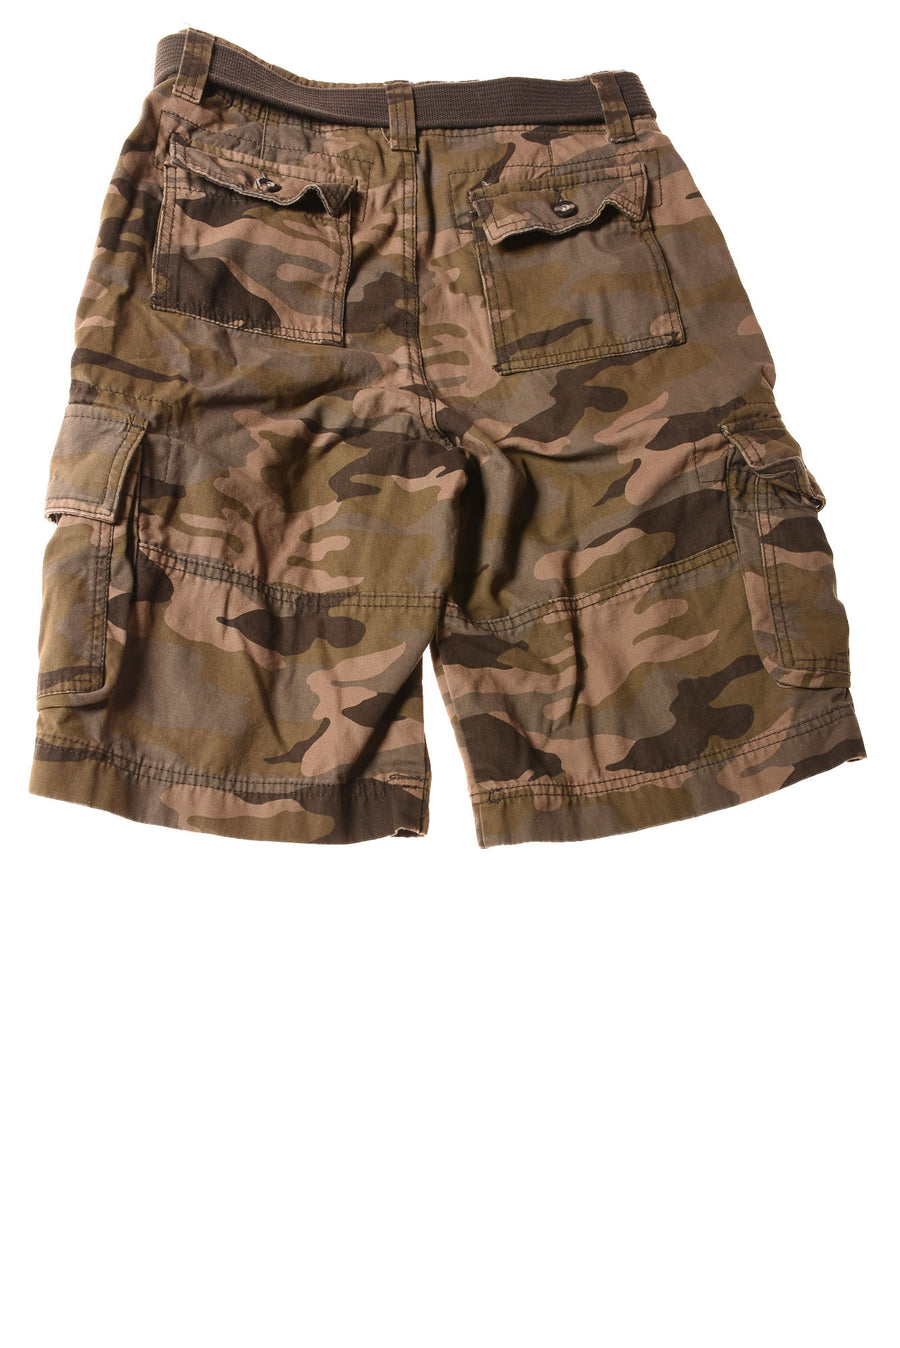 USED Mossimo Supply Co. Men's Shorts  28 Green / Camo Print